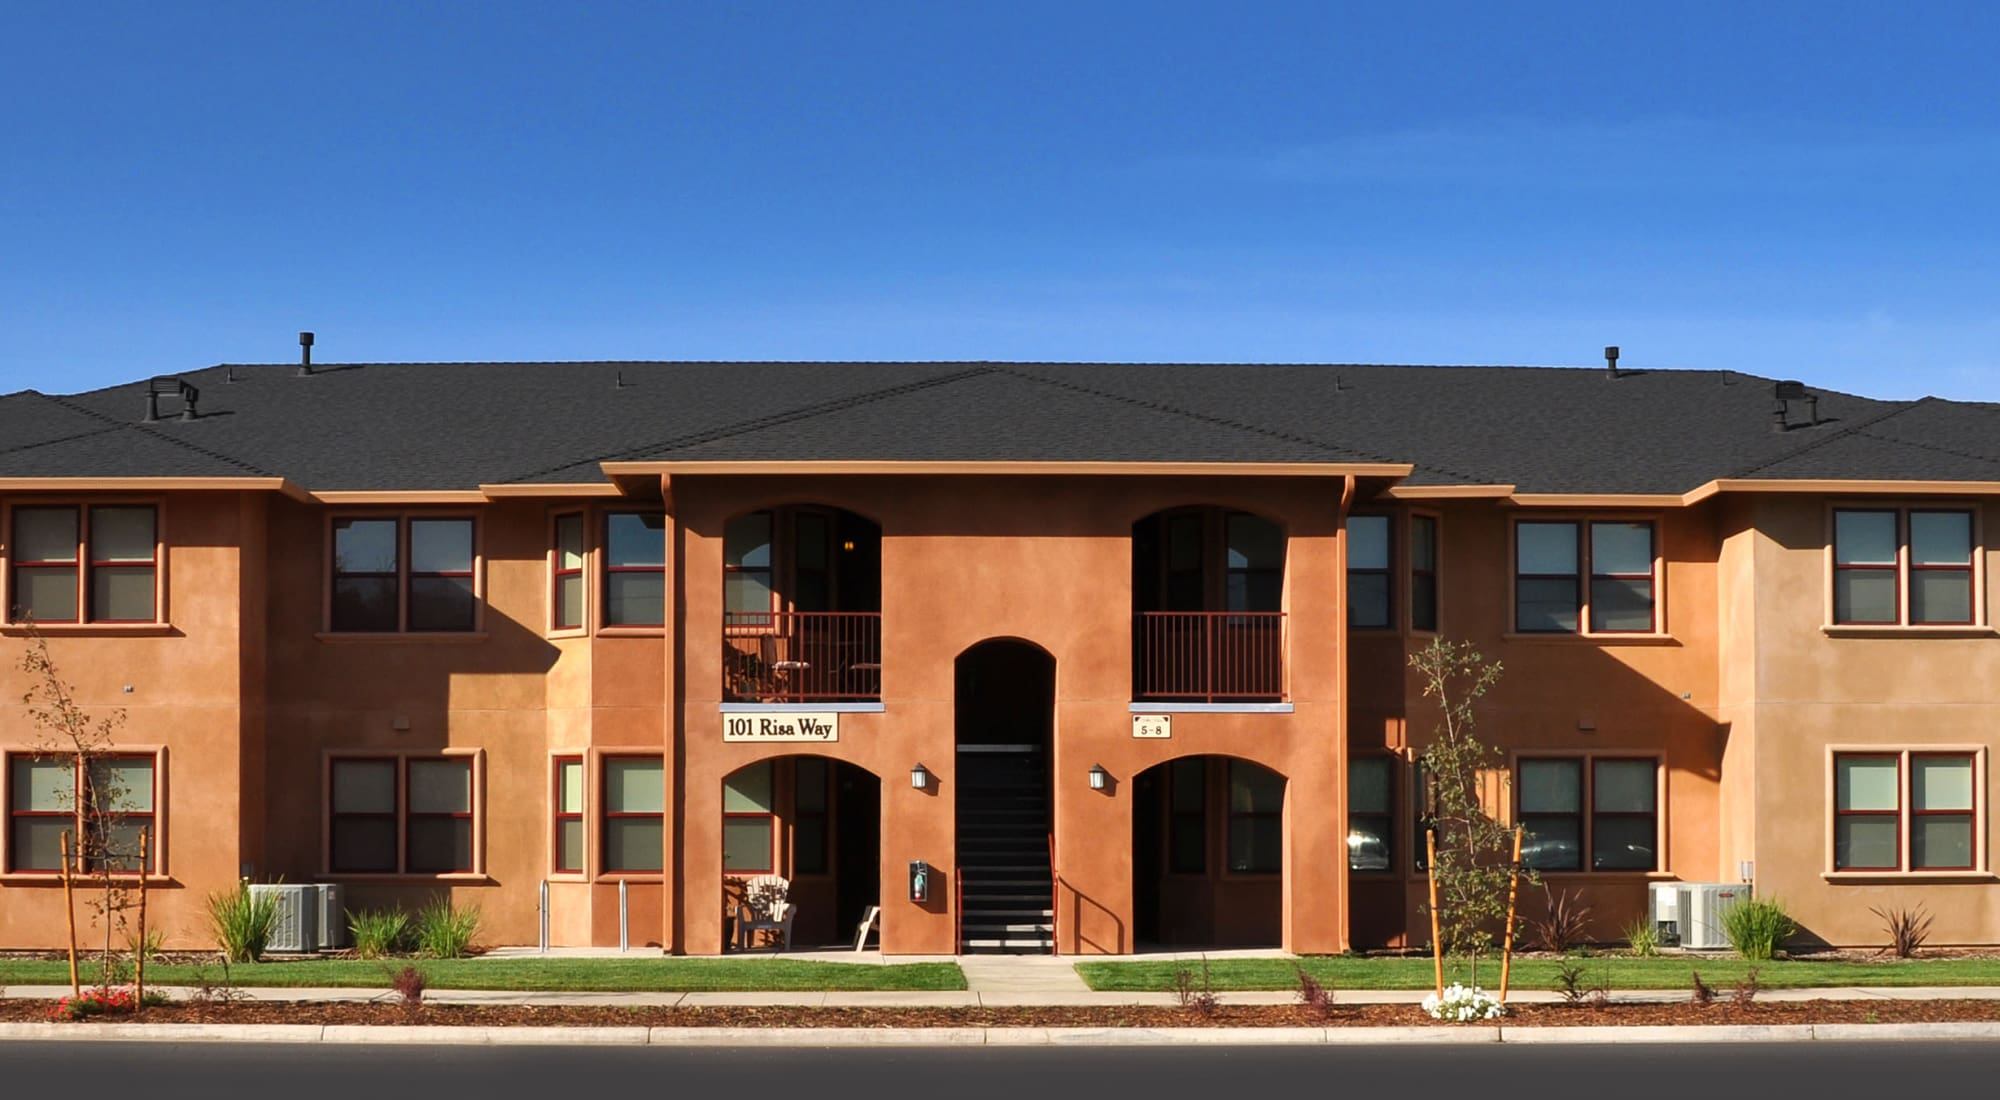 Maps and directions to Villa Risa Apartments in Chico, California